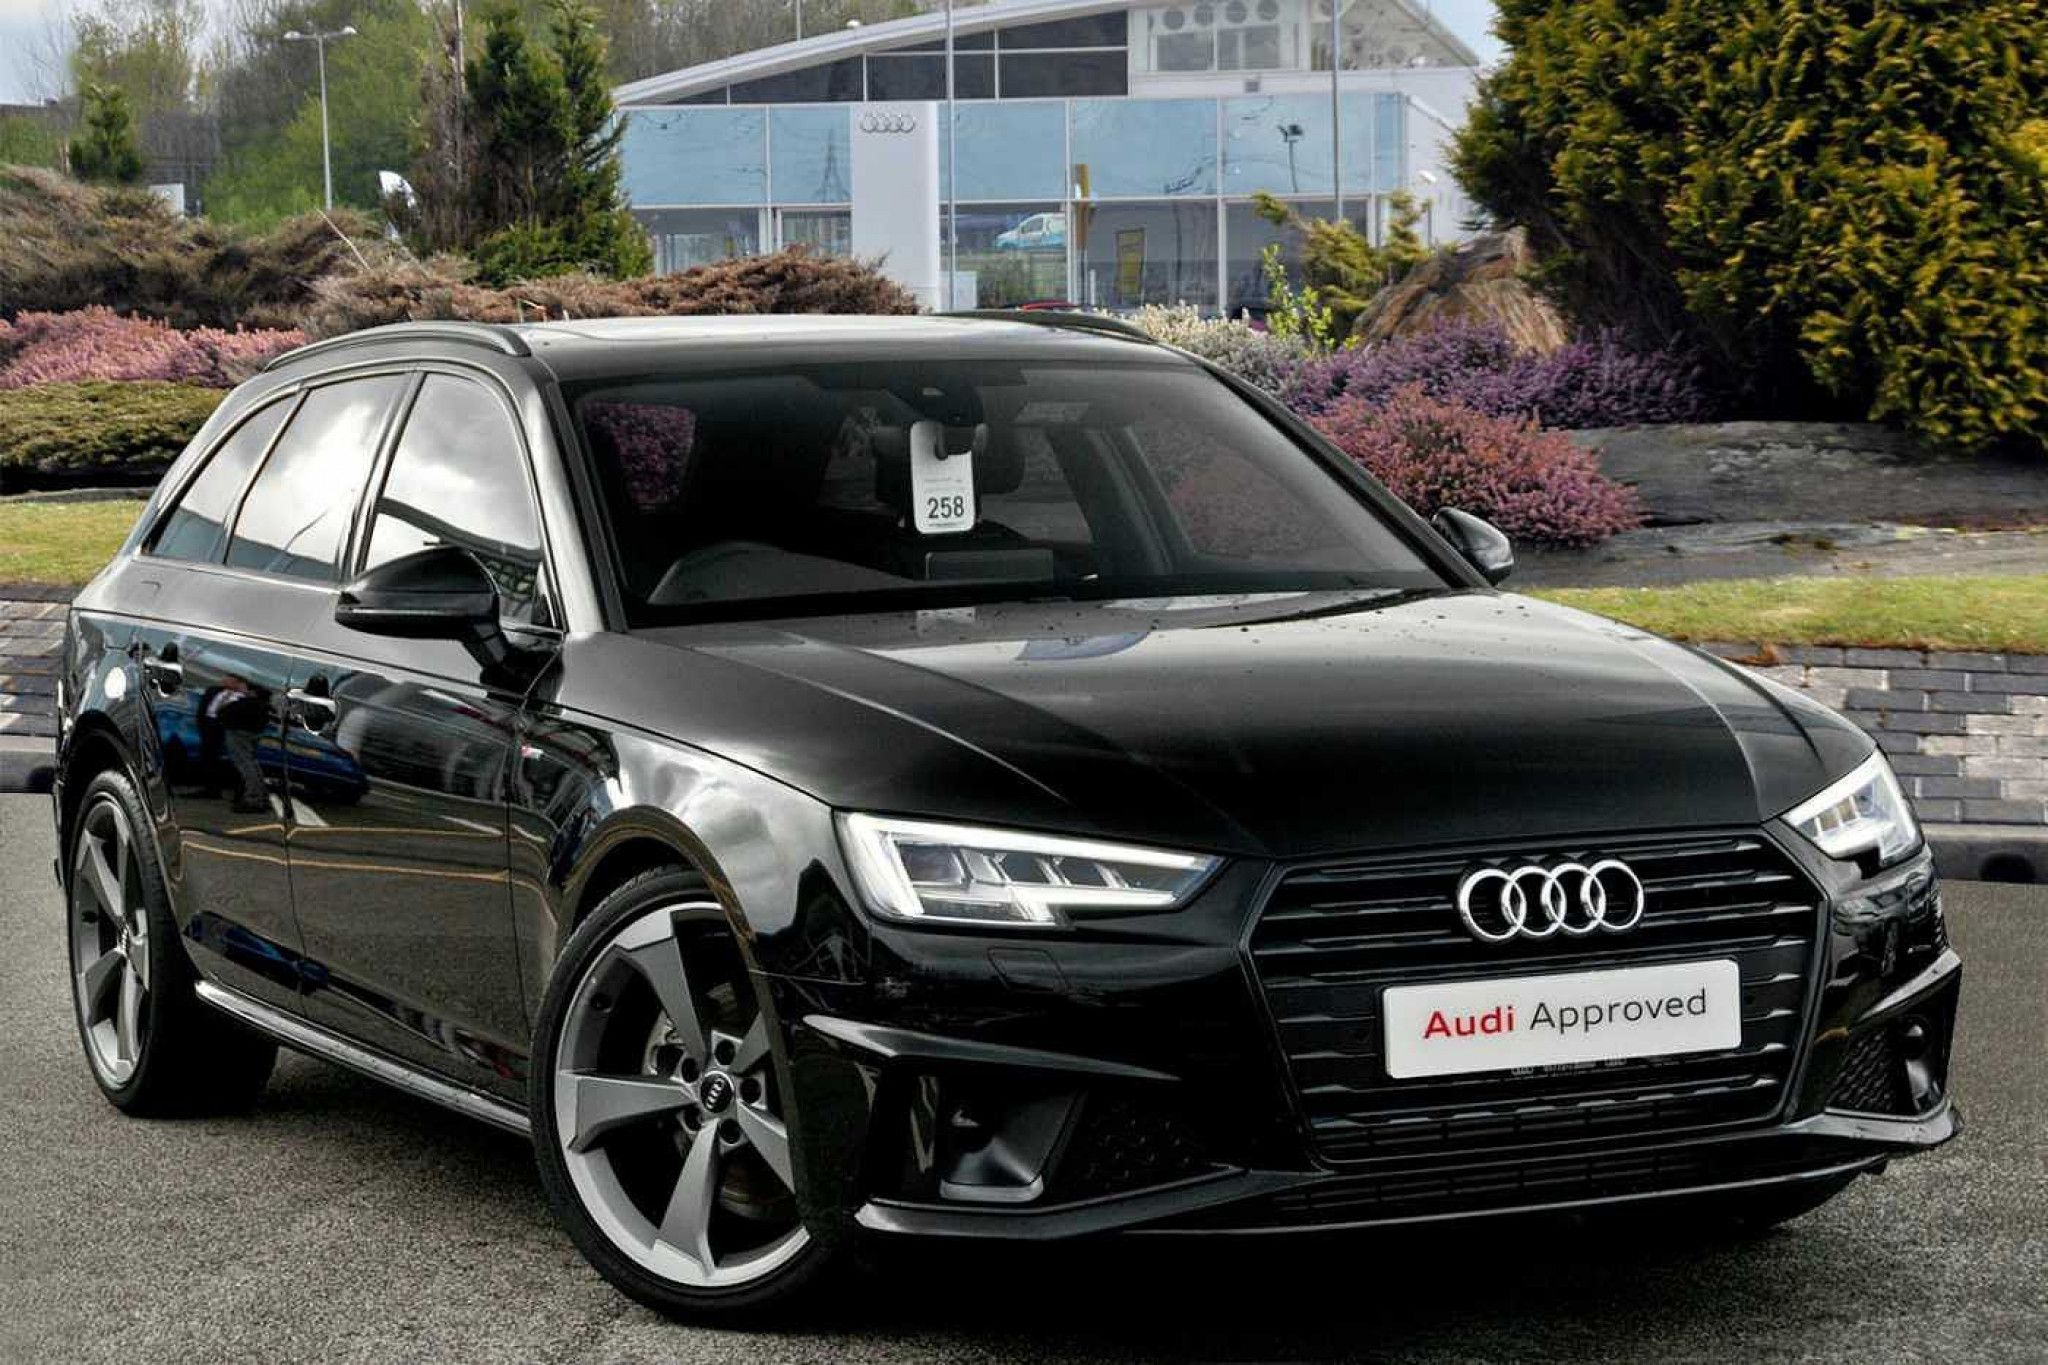 Audi A4 35 Tfsi Black Edition 5Dr in 2020 Audi, Audi a3